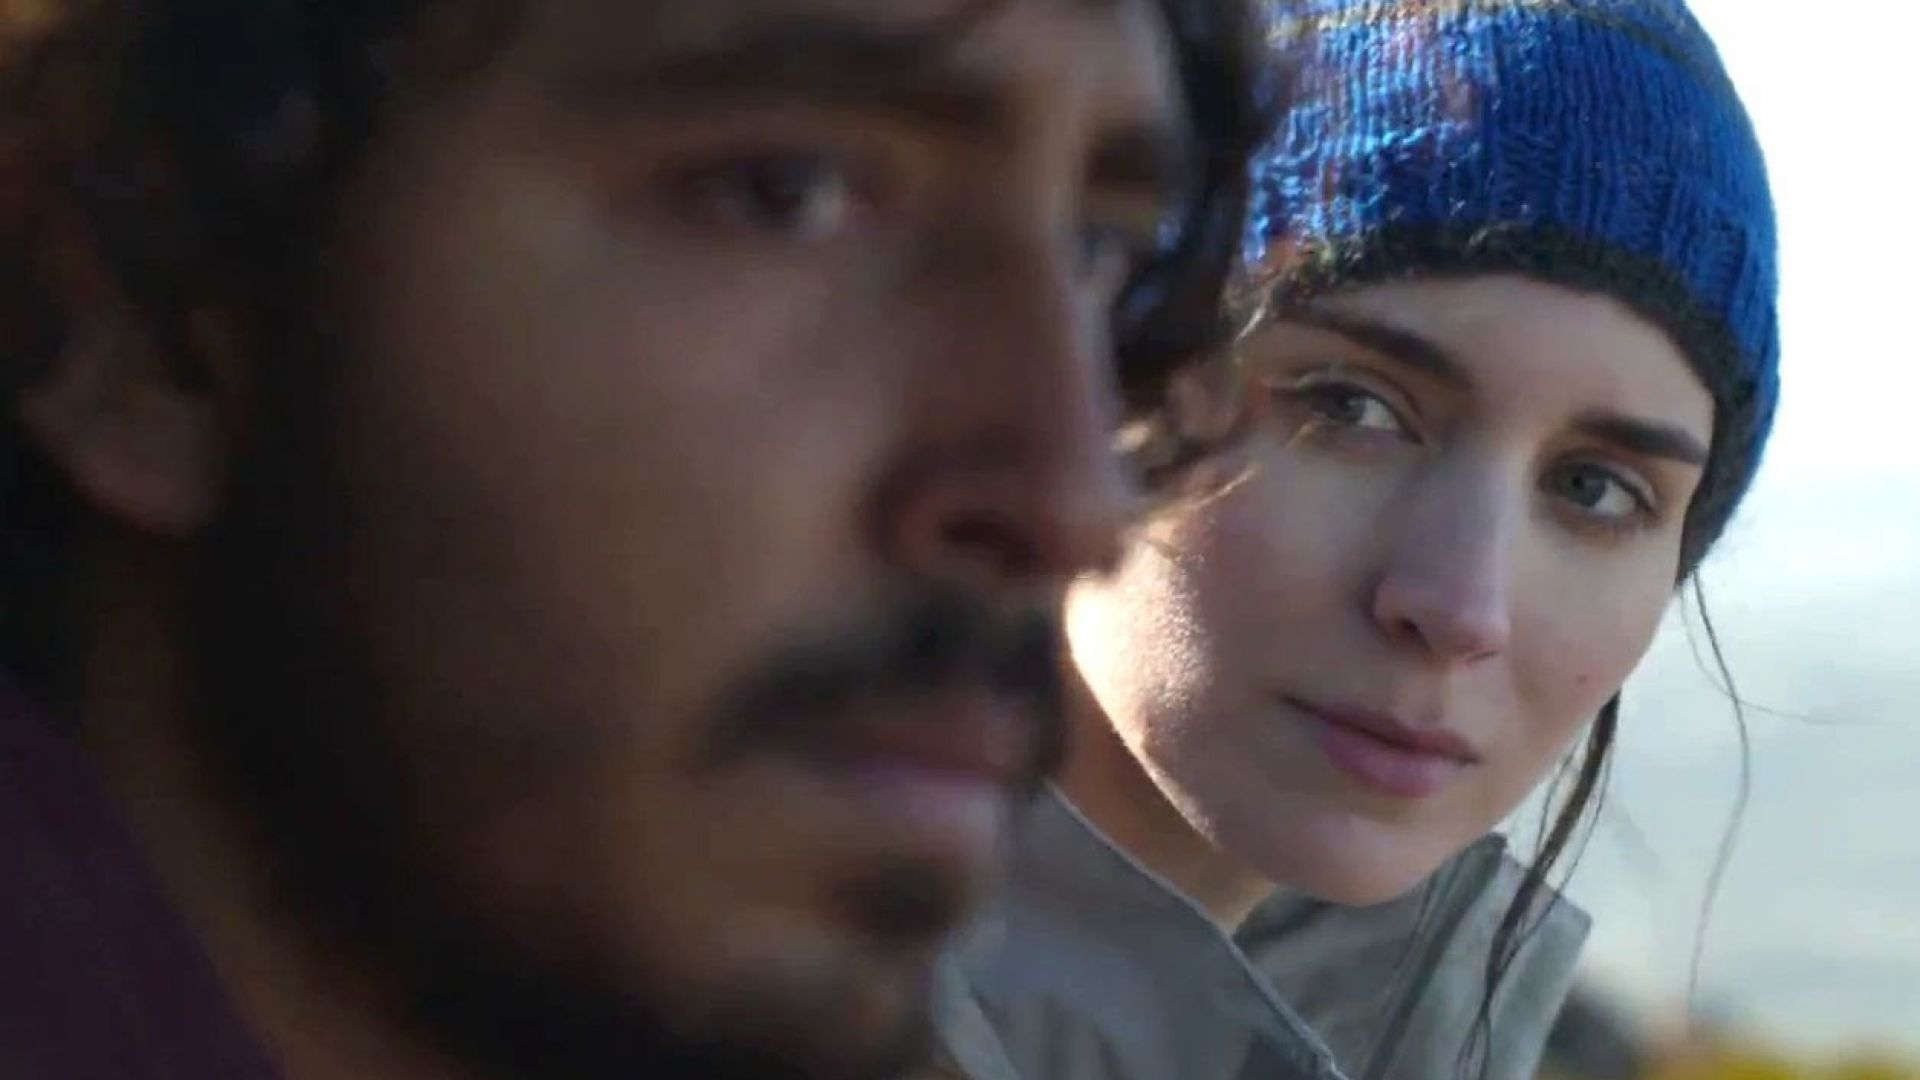 Rooney Mara and Dev Patel star in a heartfelt search for hom